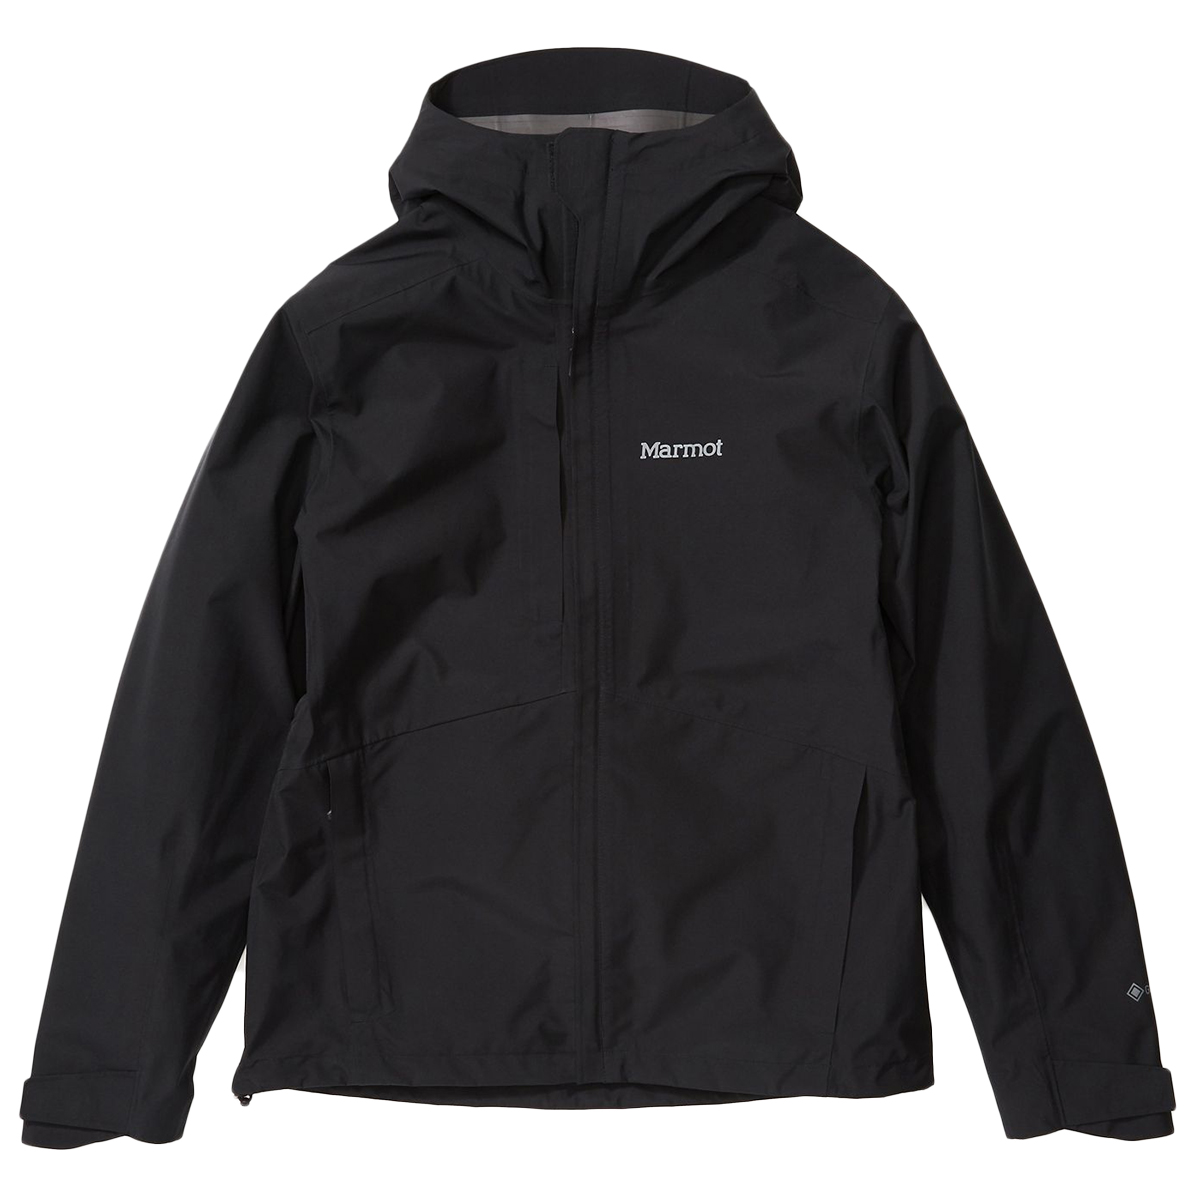 Marmot Men's Minimalist Jacket - Black, XXL